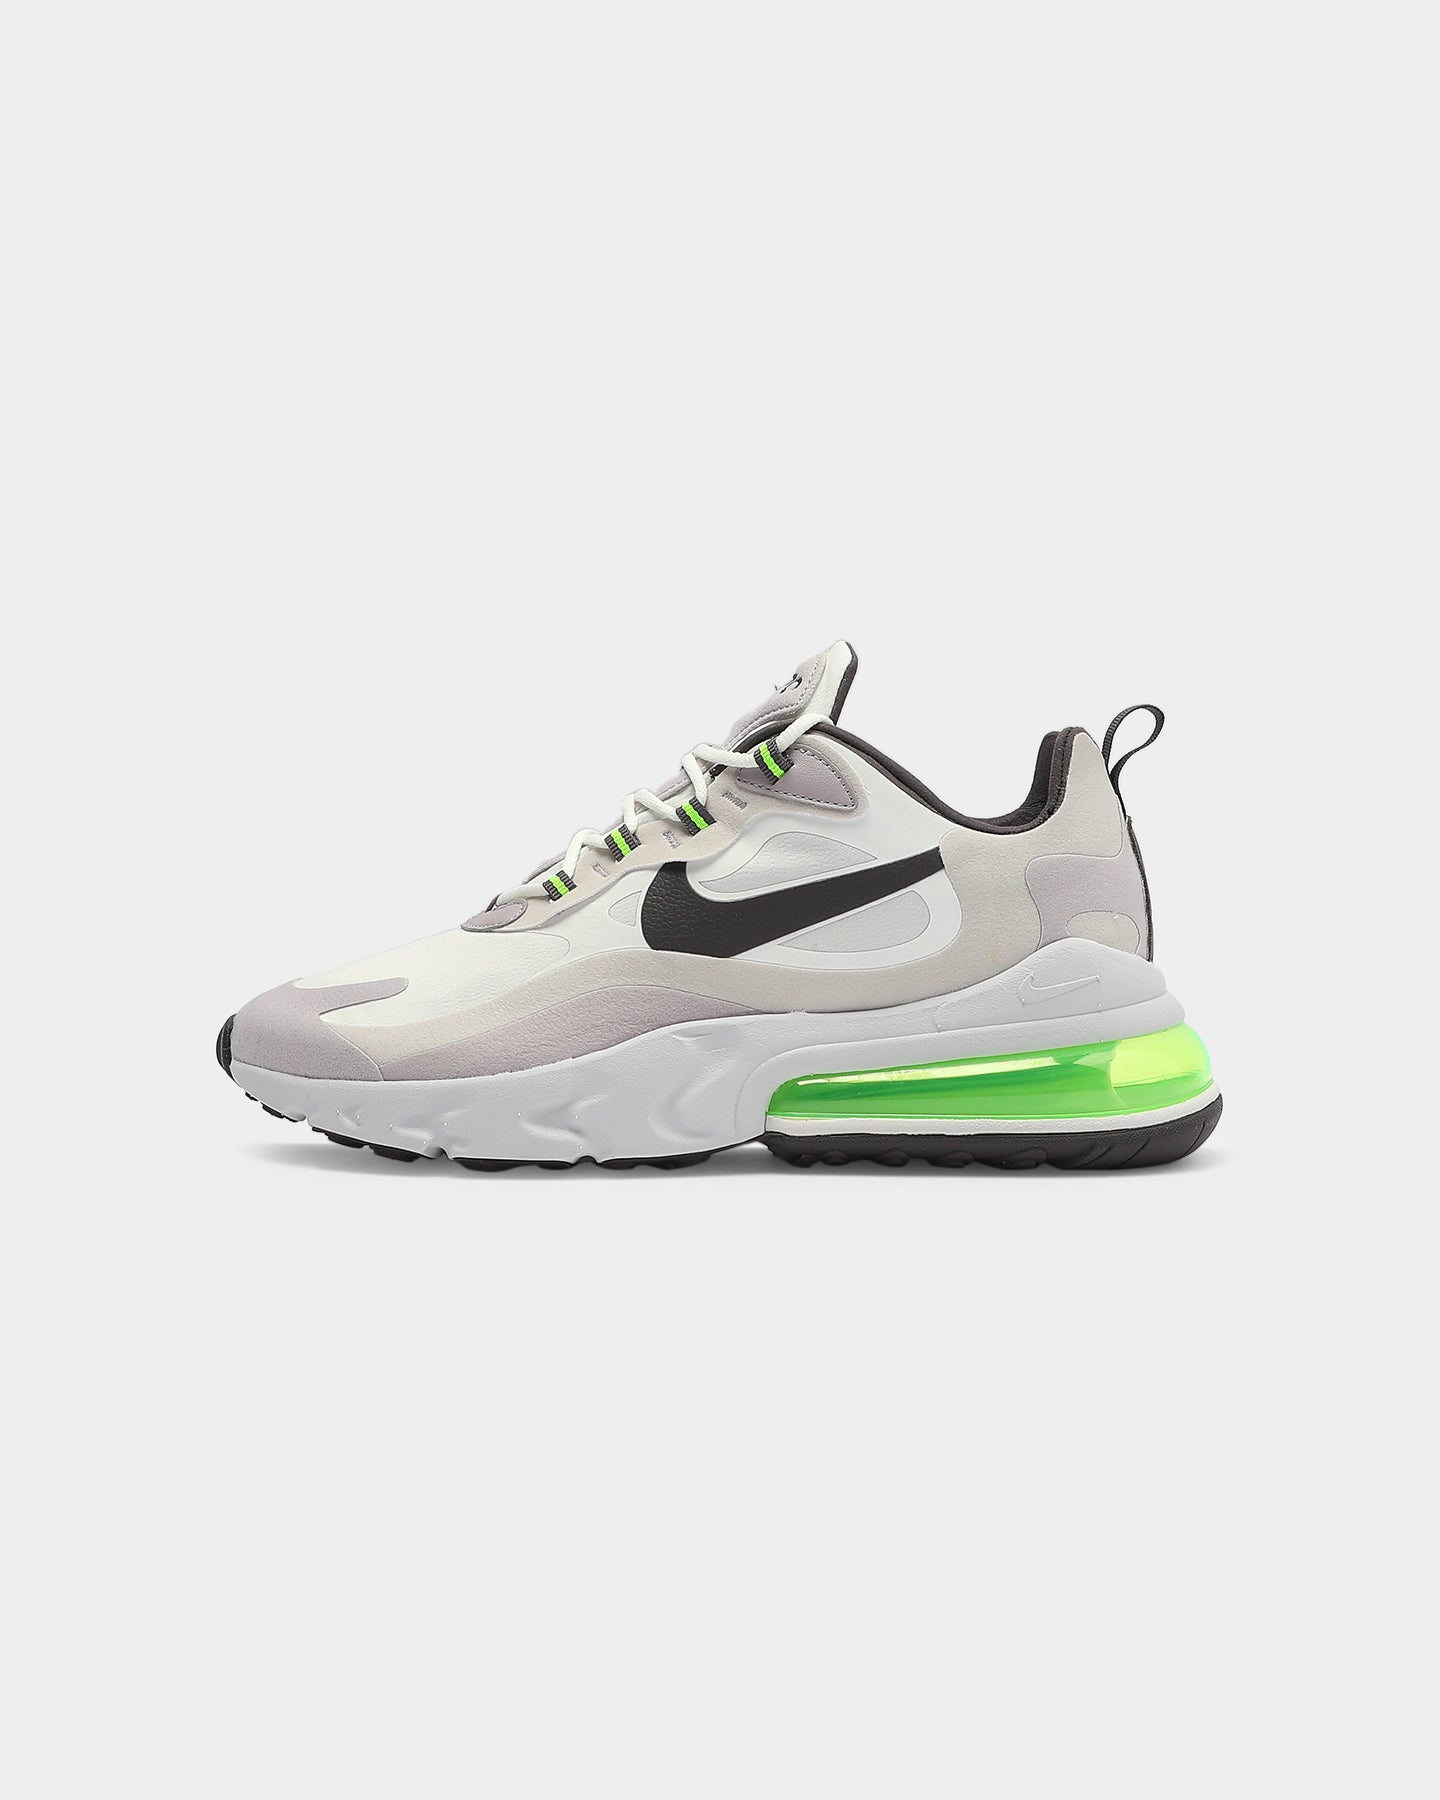 Nike Air Max 270 React WhiteGreenGreen